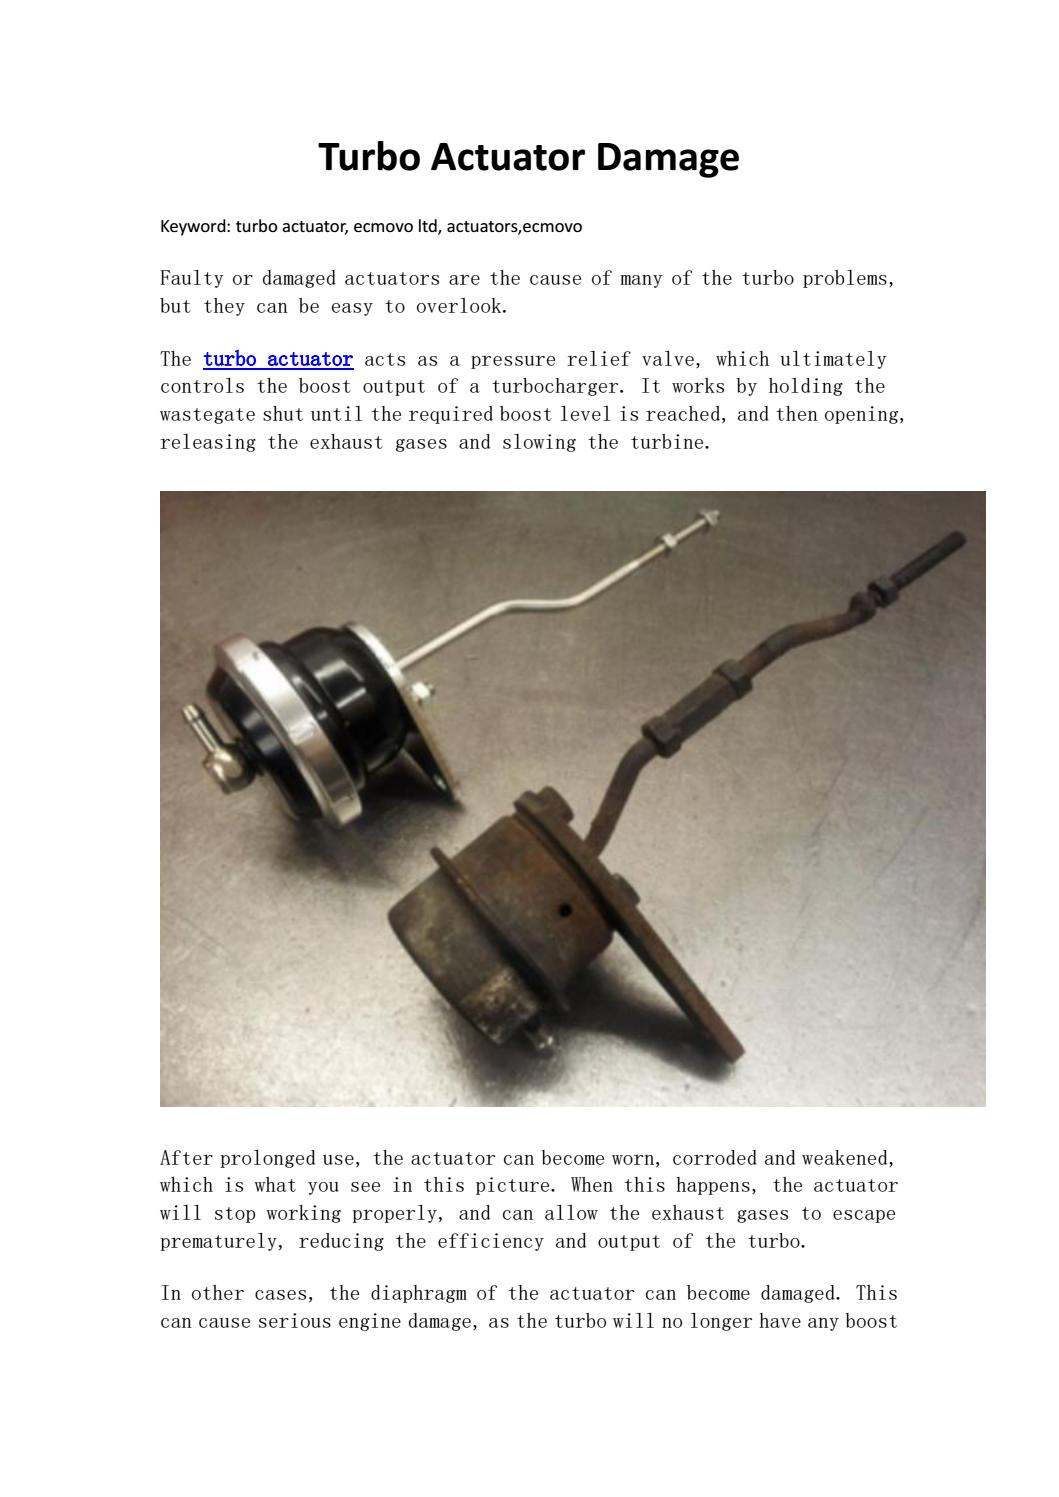 Turbo actuator damage ecmovo ltd by Fate Saber - issuu